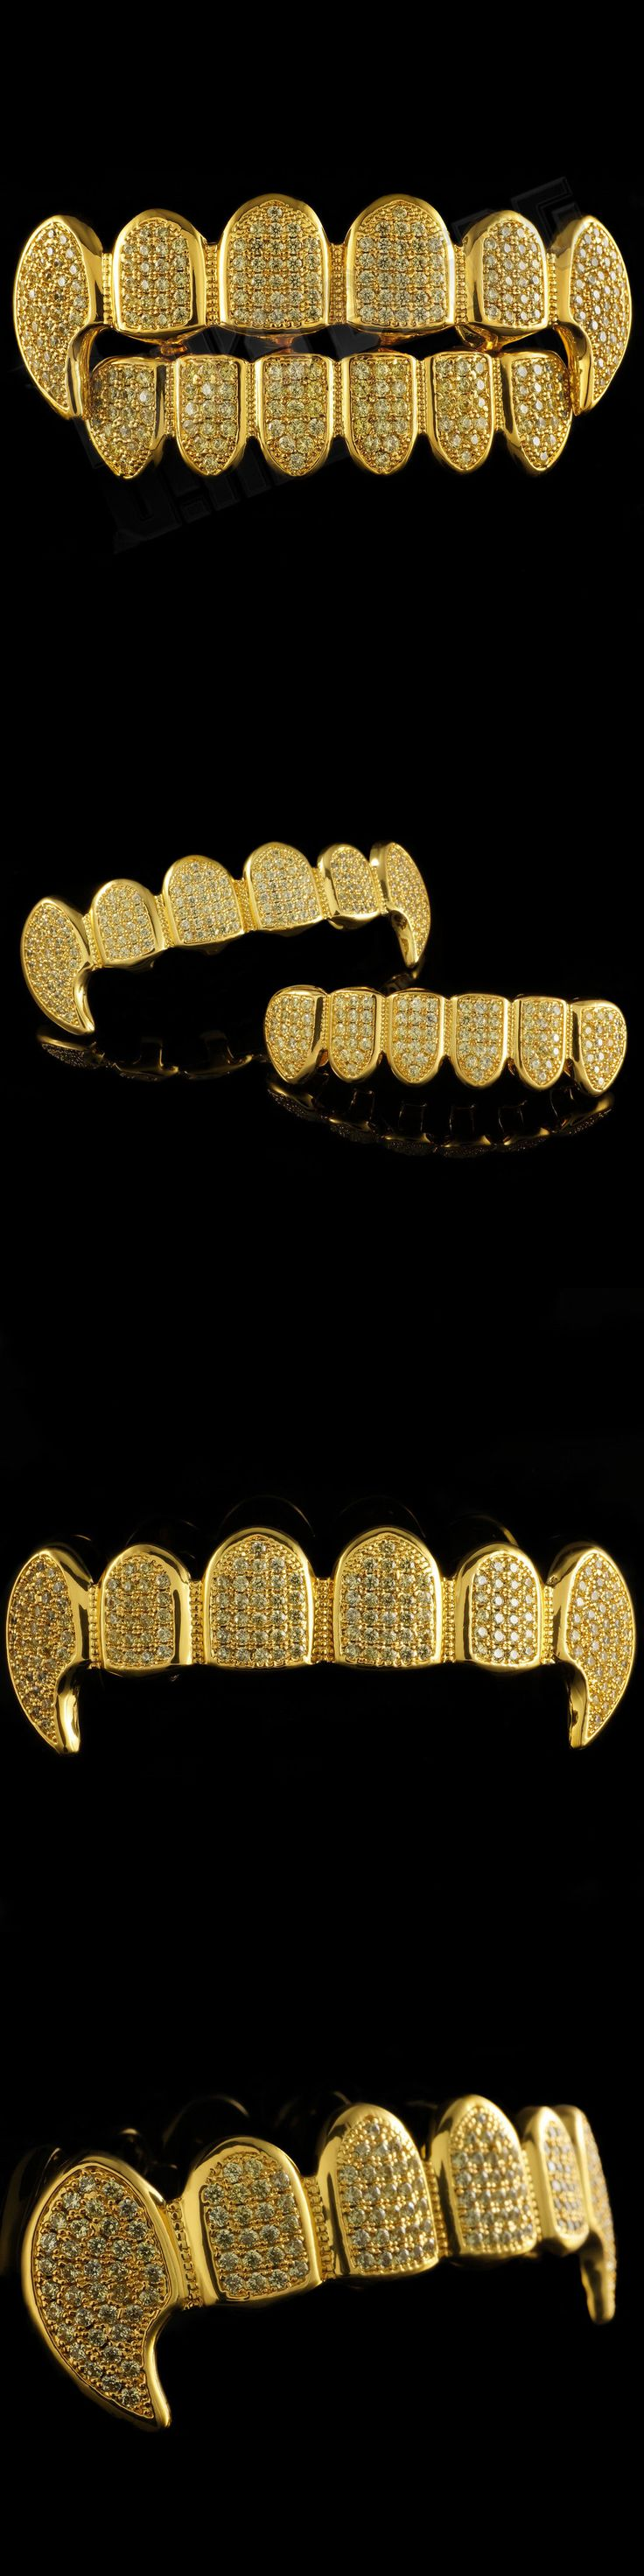 Grillz Dental Grills 152808: 18K Gold Plated Canary Cz Vampire Dracula Fangs Top Bottom Grillz Teeth Grills BUY IT NOW ONLY: $59.99